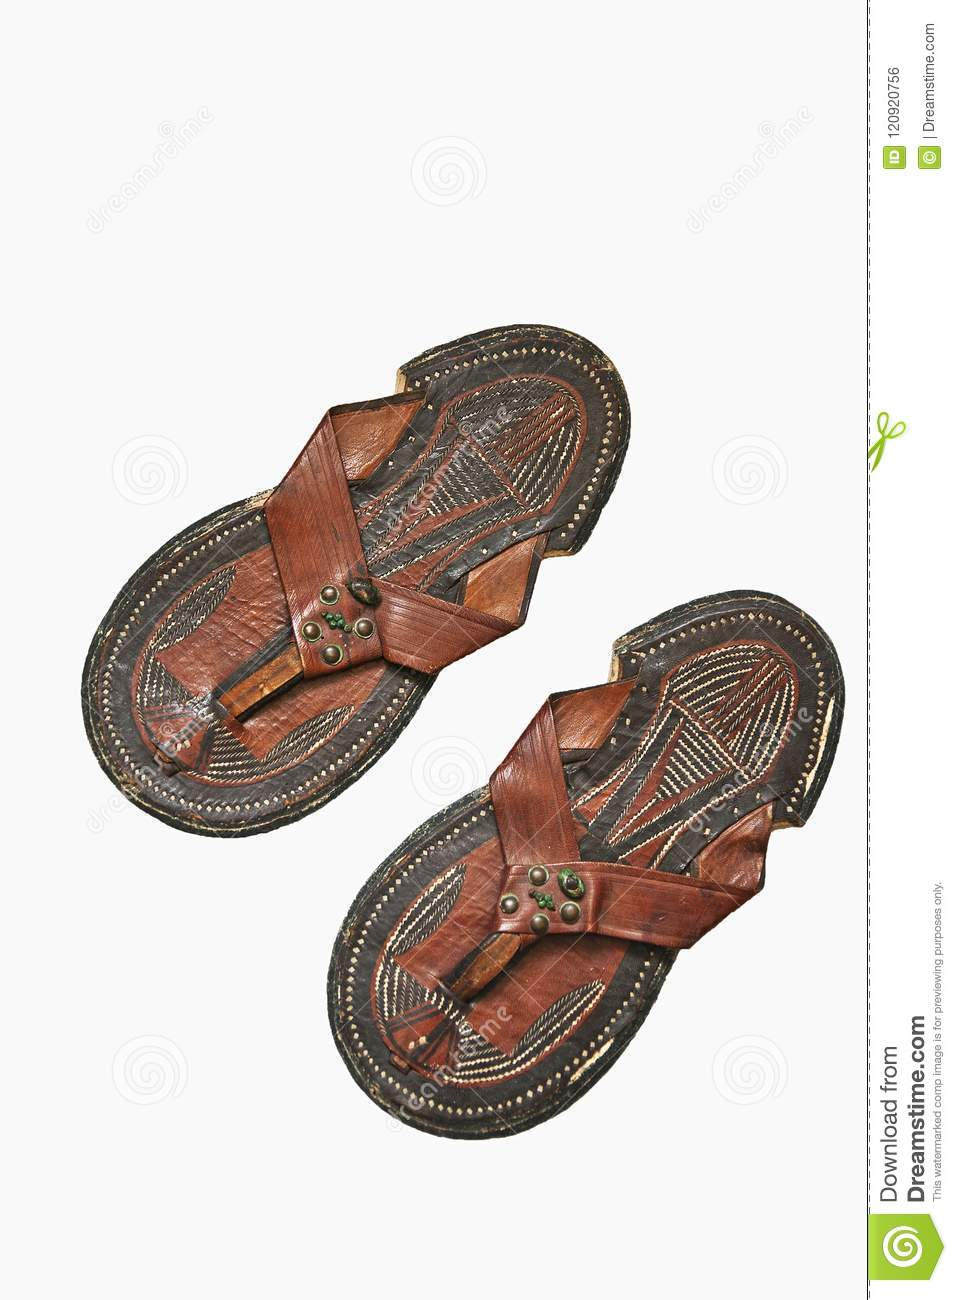 99776f14336 Traditional Foot wear Arab sandals from Ancient Egypt. Ancient and antique  foot wear.